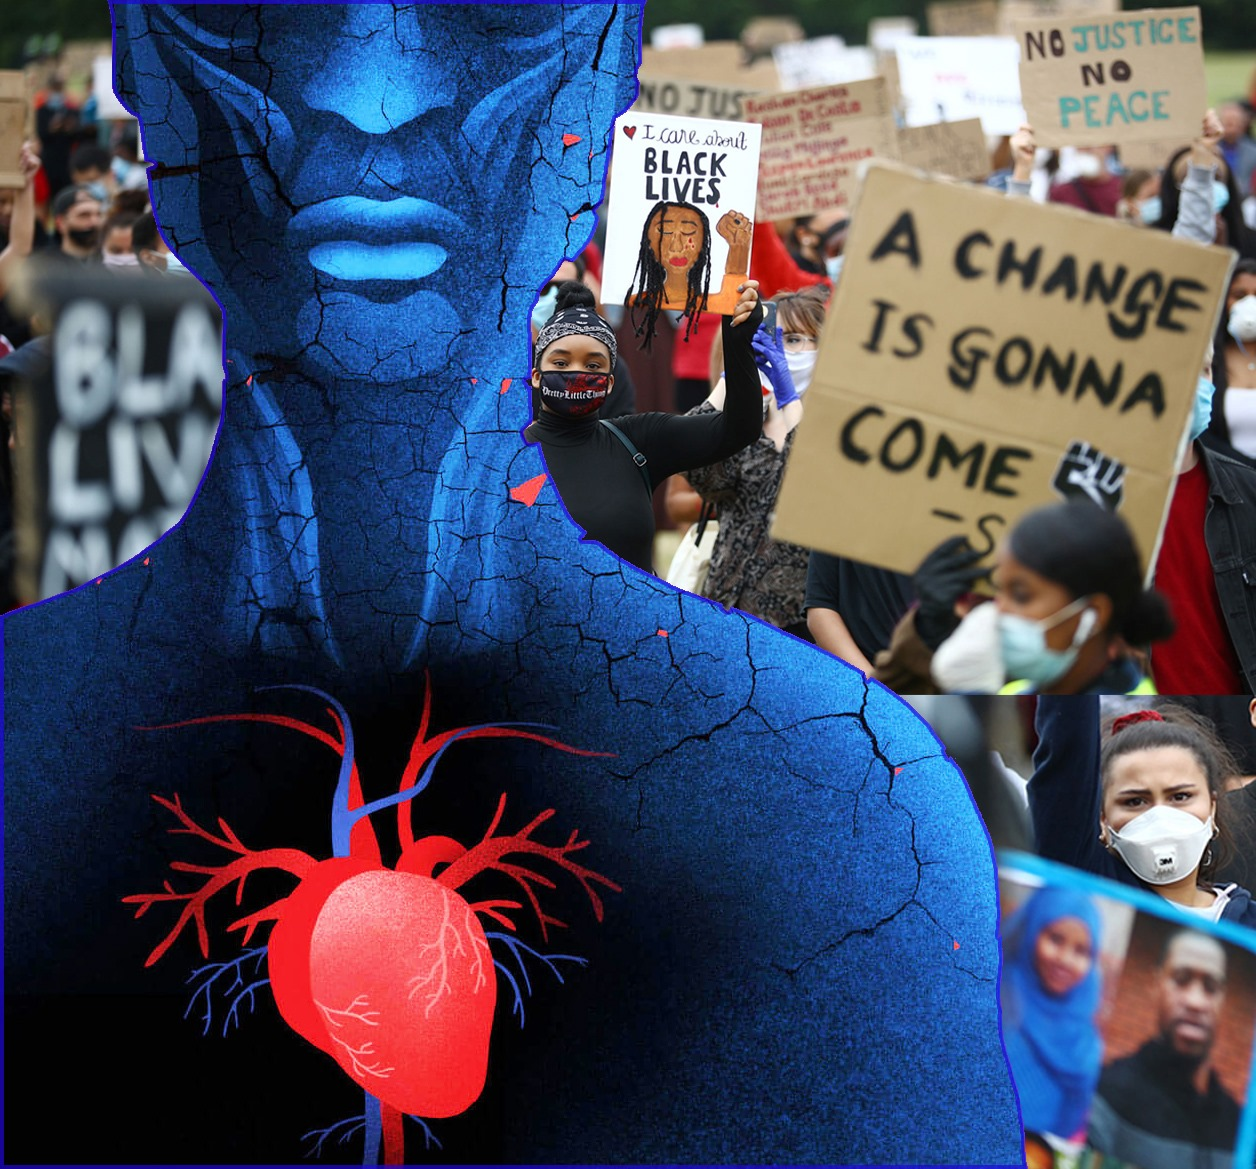 a blue figure with a bright red heart stands in front of a group of black lives matter protesters with a sign that says a change is gonna come